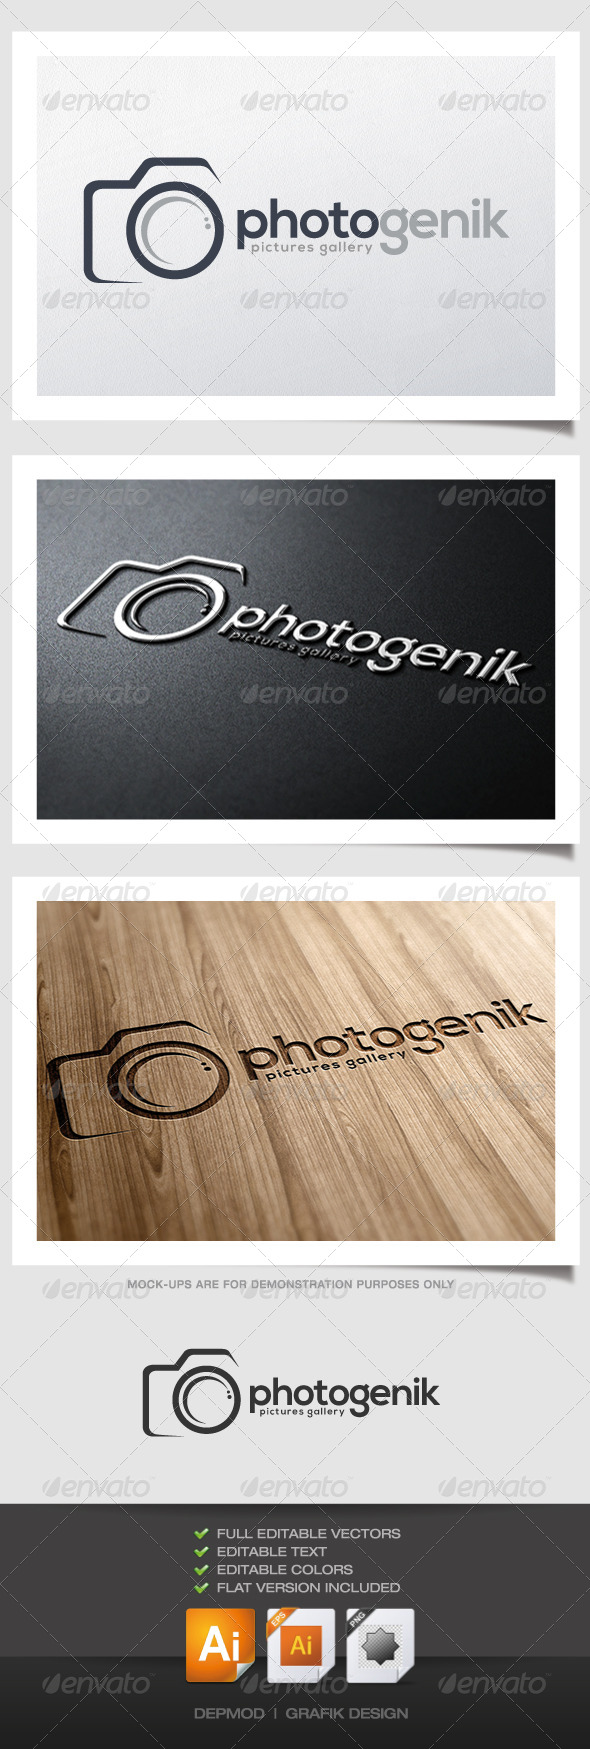 GraphicRiver Photogenik Logo 4508902